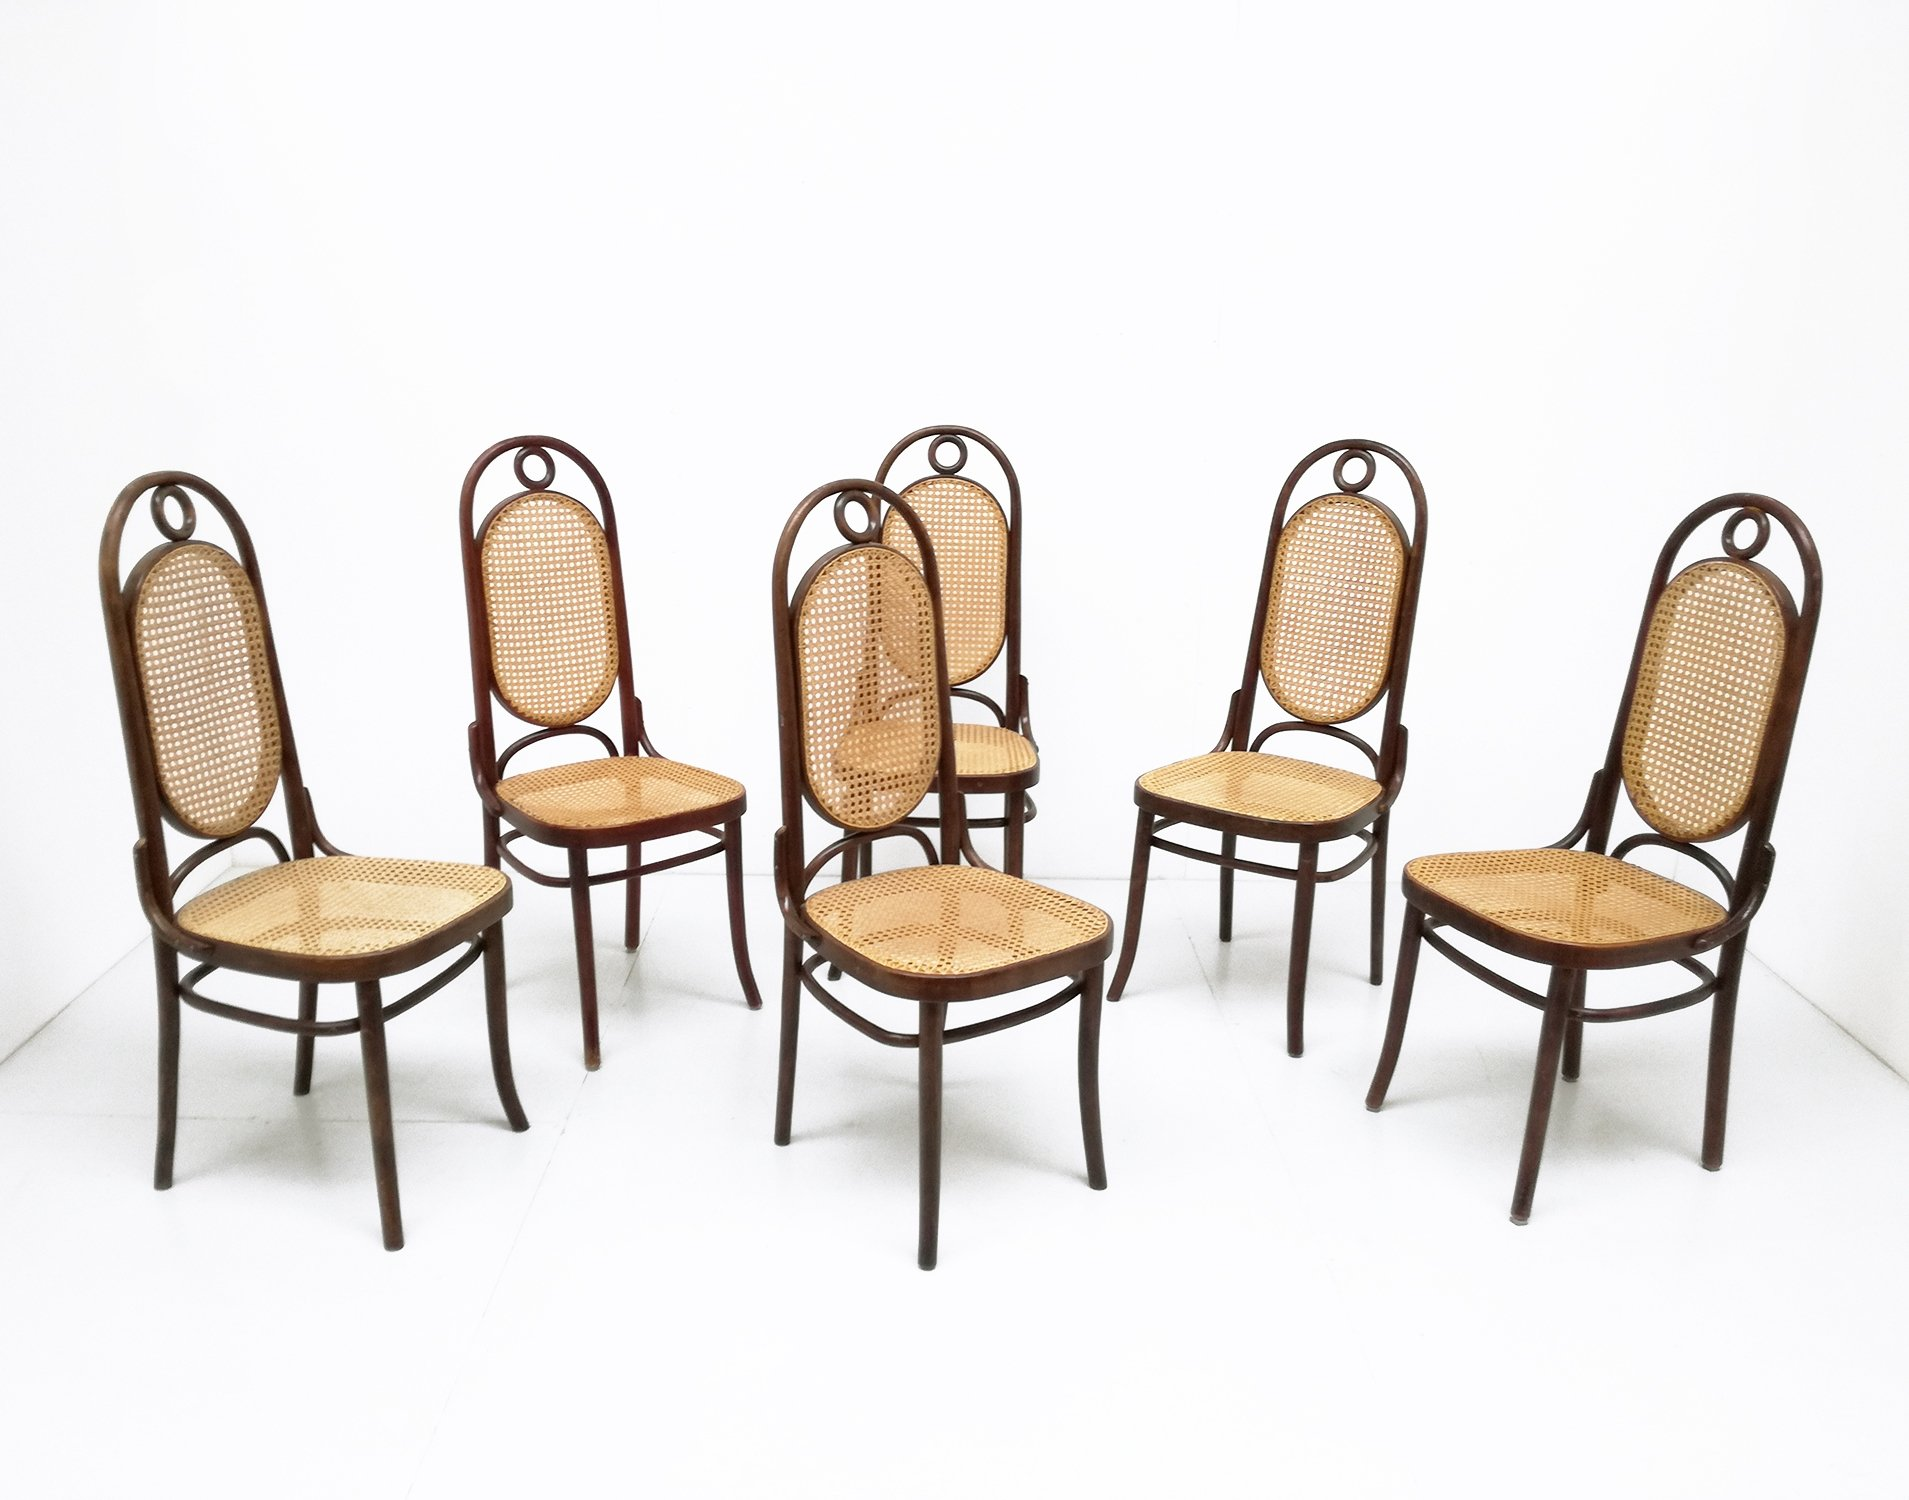 Thonet Michael Set Of 6 N 17 Dinner Chairs By Michael Thonet For Thonet